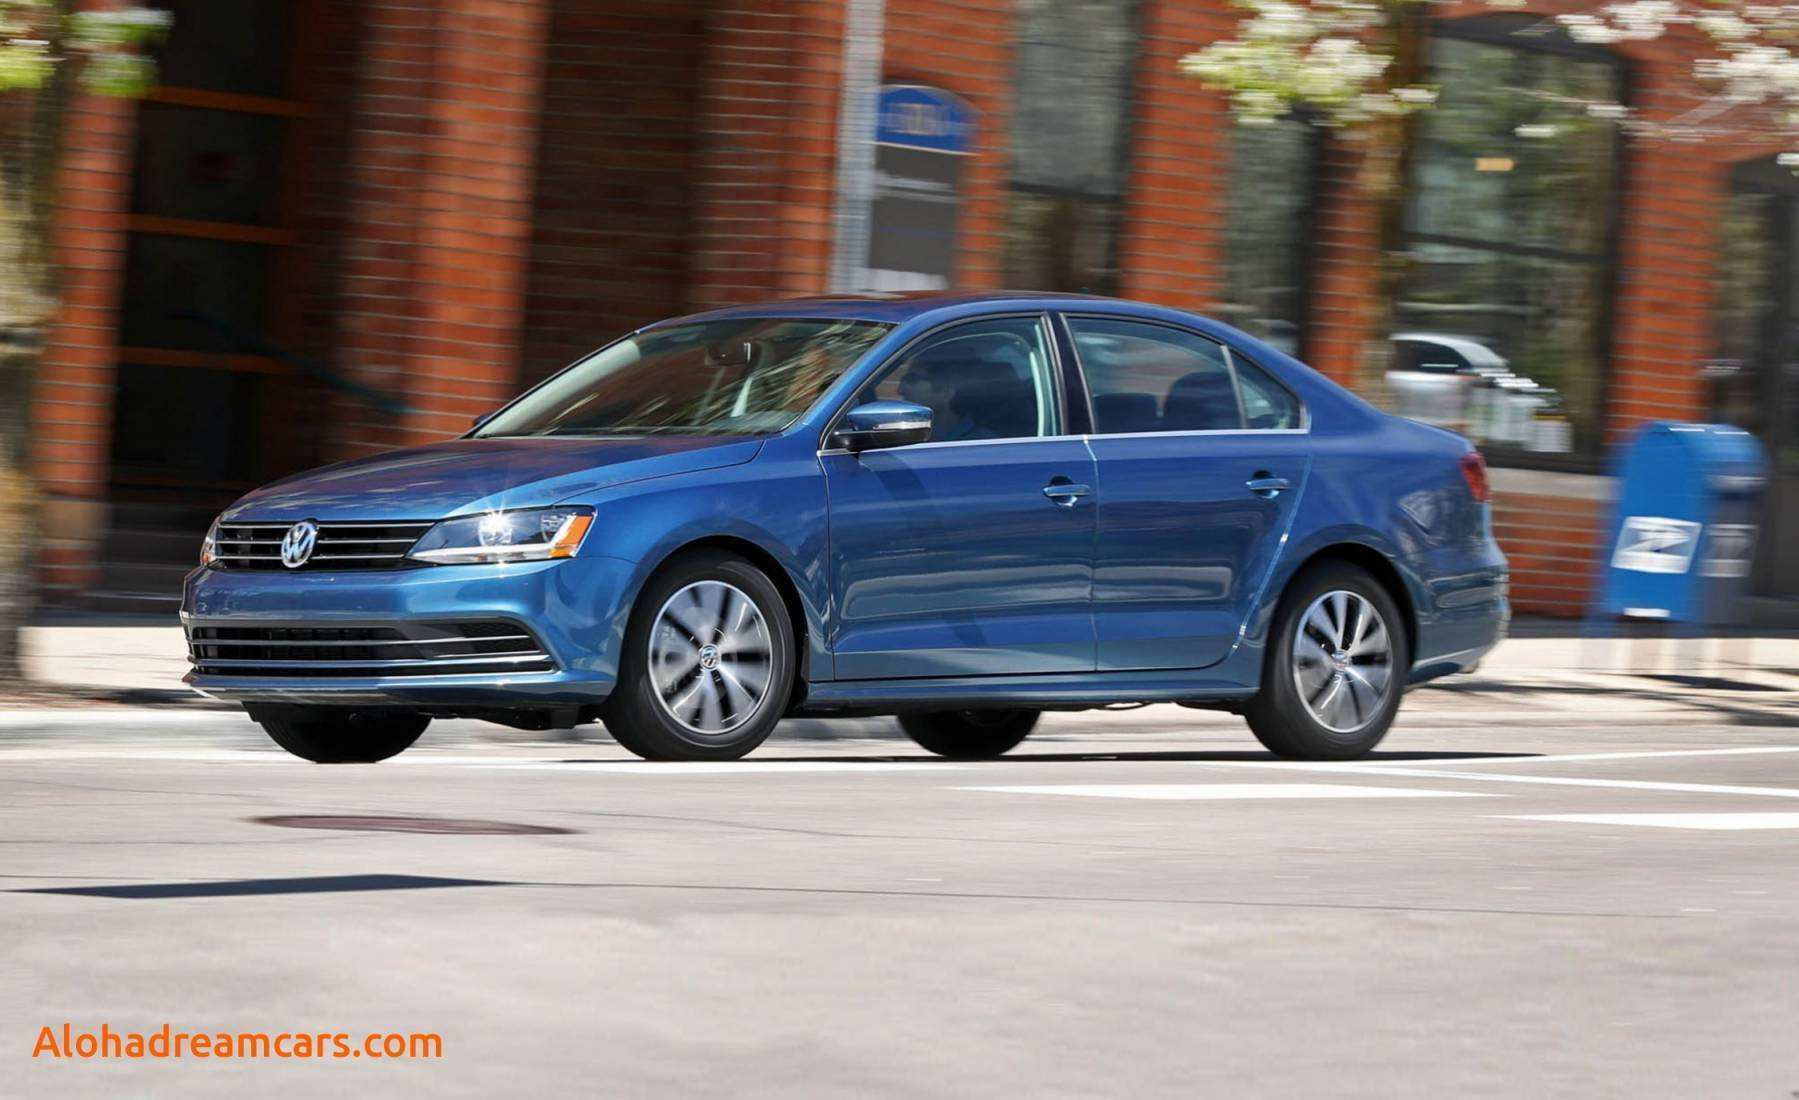 95 Best 2019 VW Jetta Tdi Gli Pricing